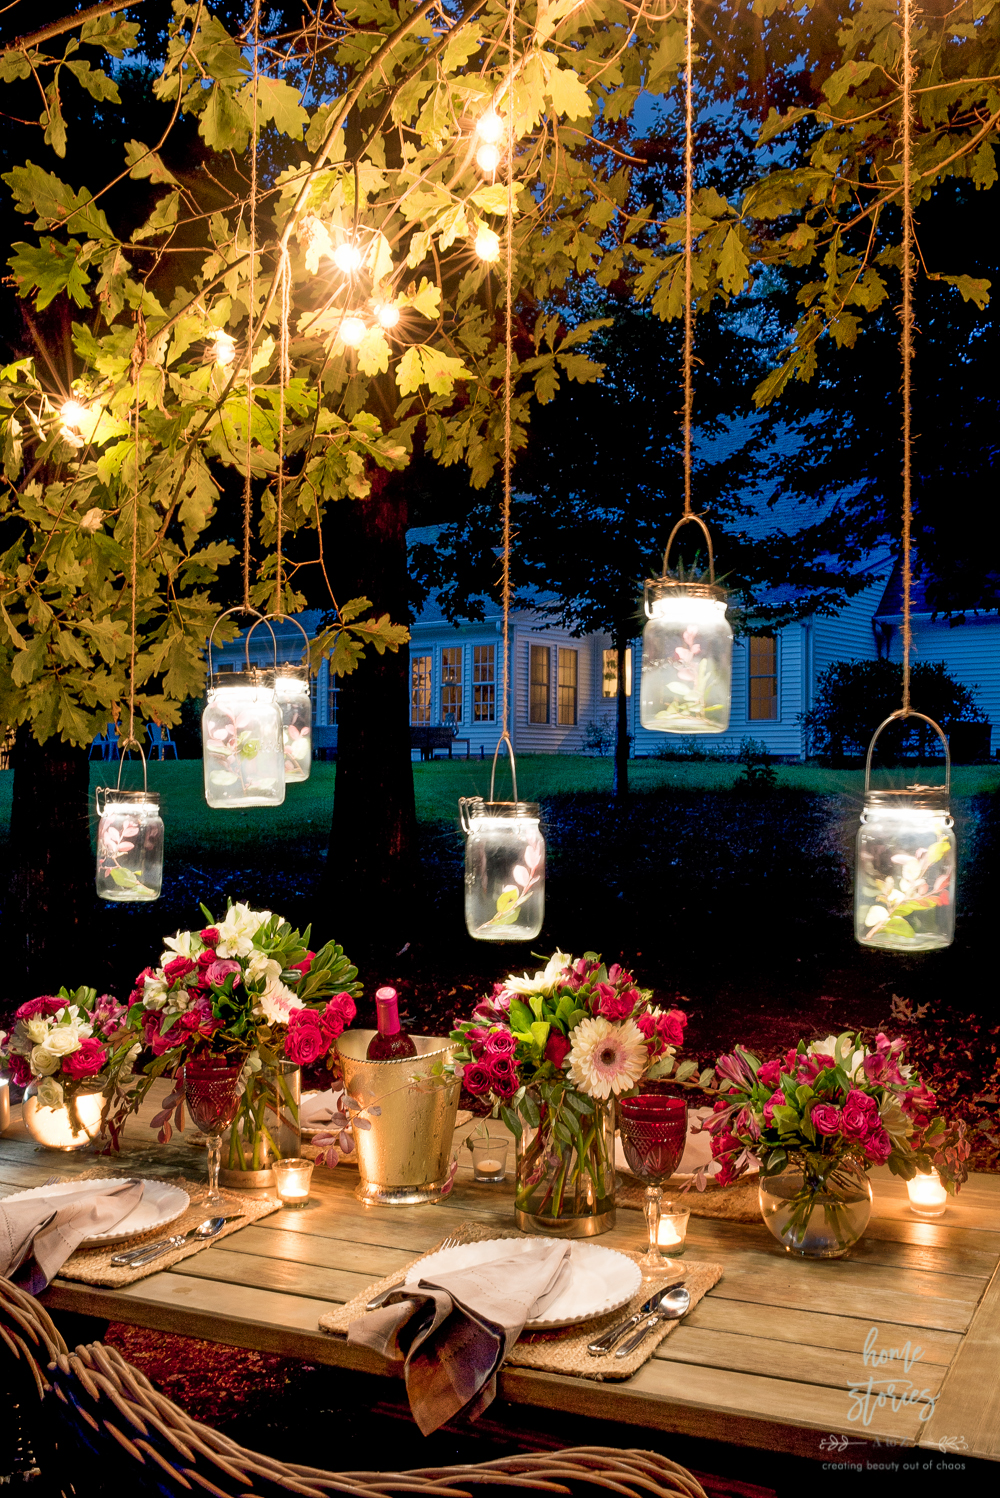 Outdoor Table Setting Tips: Products to Help Create a Gorgeous